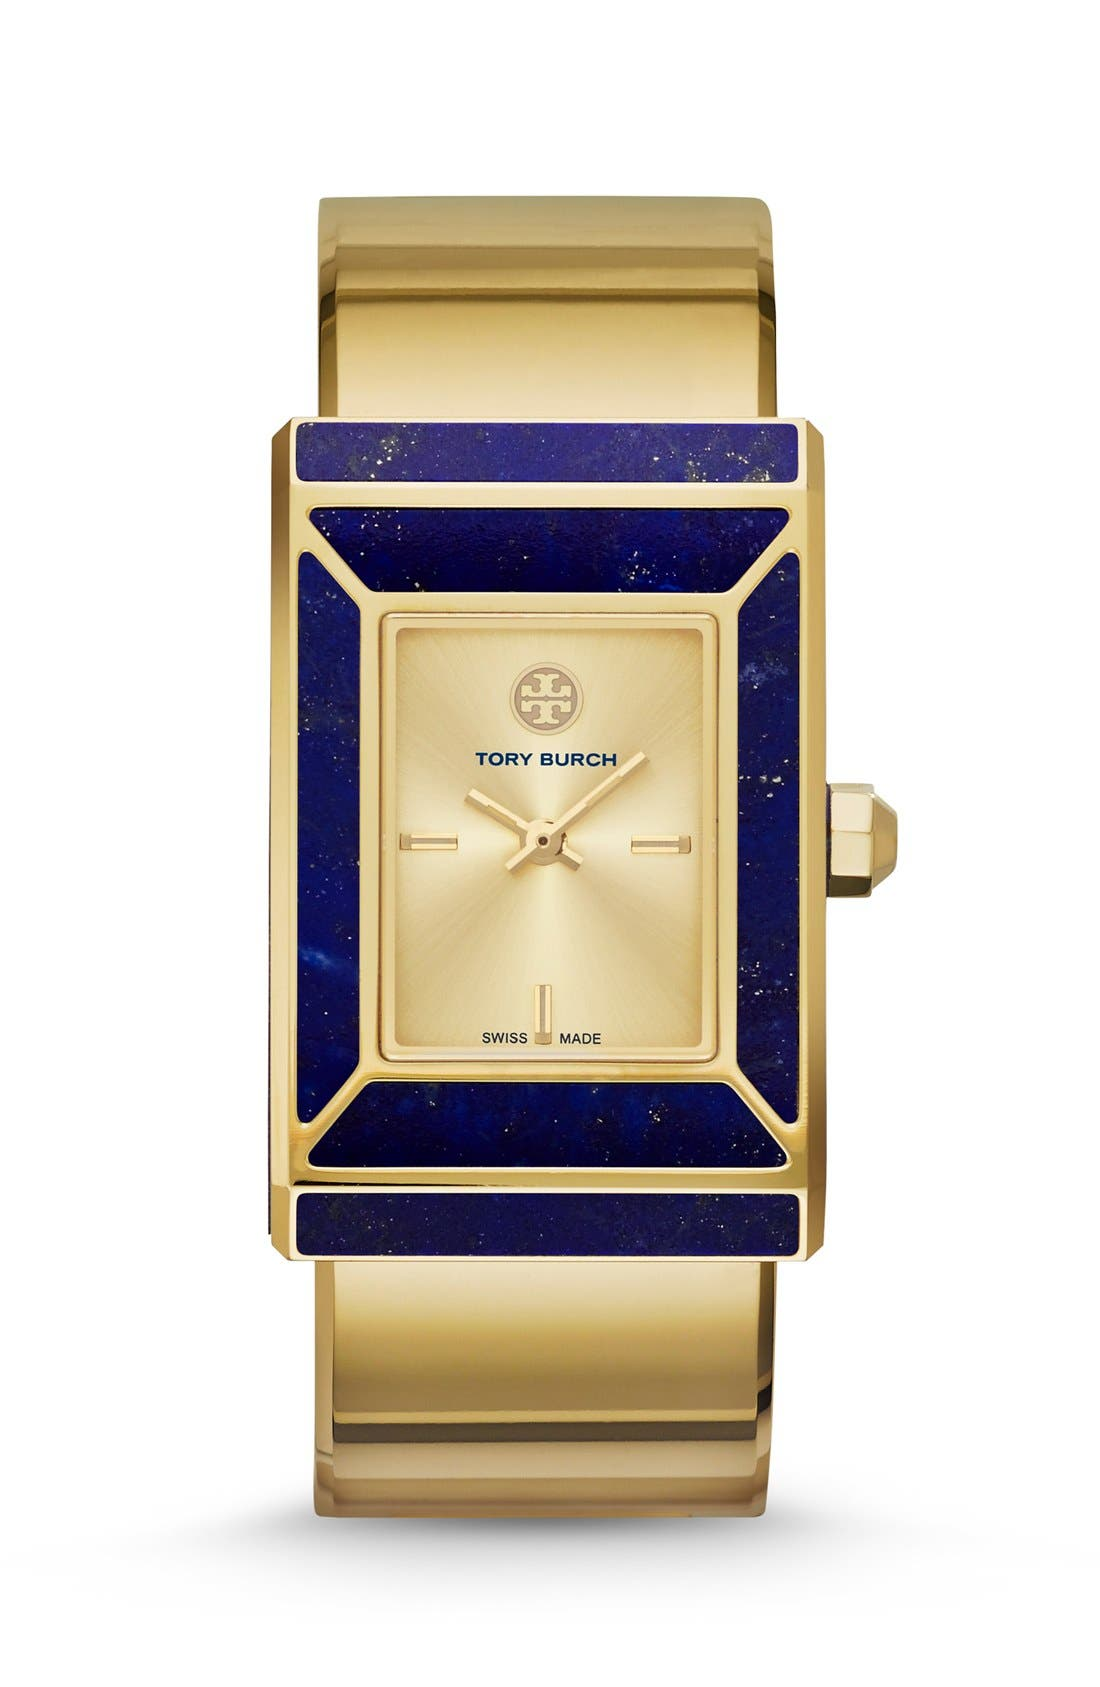 TORY BURCH 'Robinson' Rectangle Case Bangle Watch, 25mm x 38mm, Main, color, 710